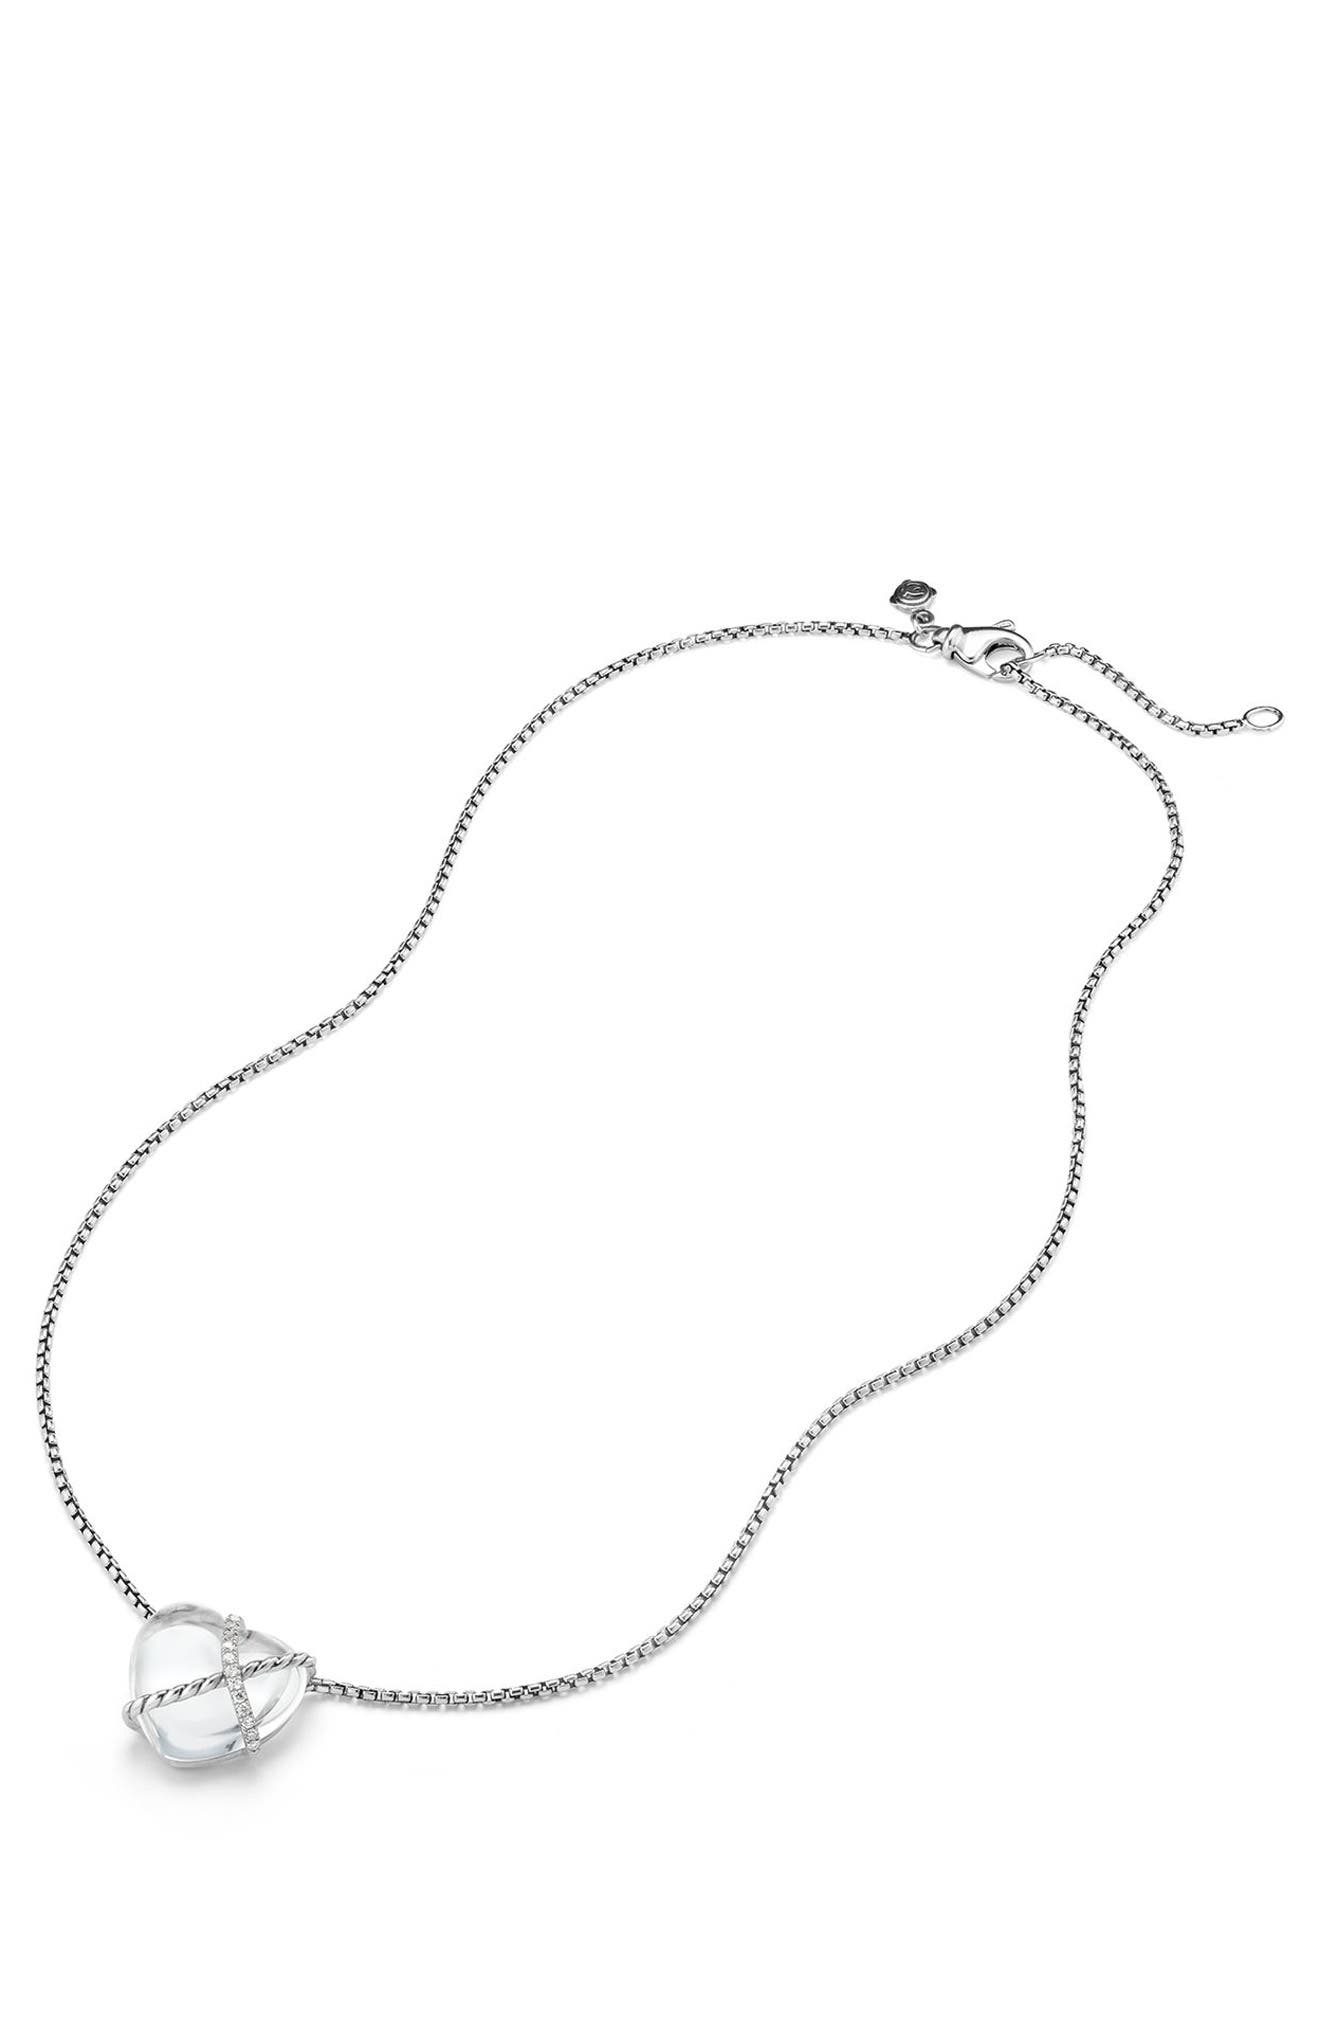 Le Petite Coeur Sculpted Heart Chain Necklace with Diamonds,                             Alternate thumbnail 4, color,                             CRYSTAL